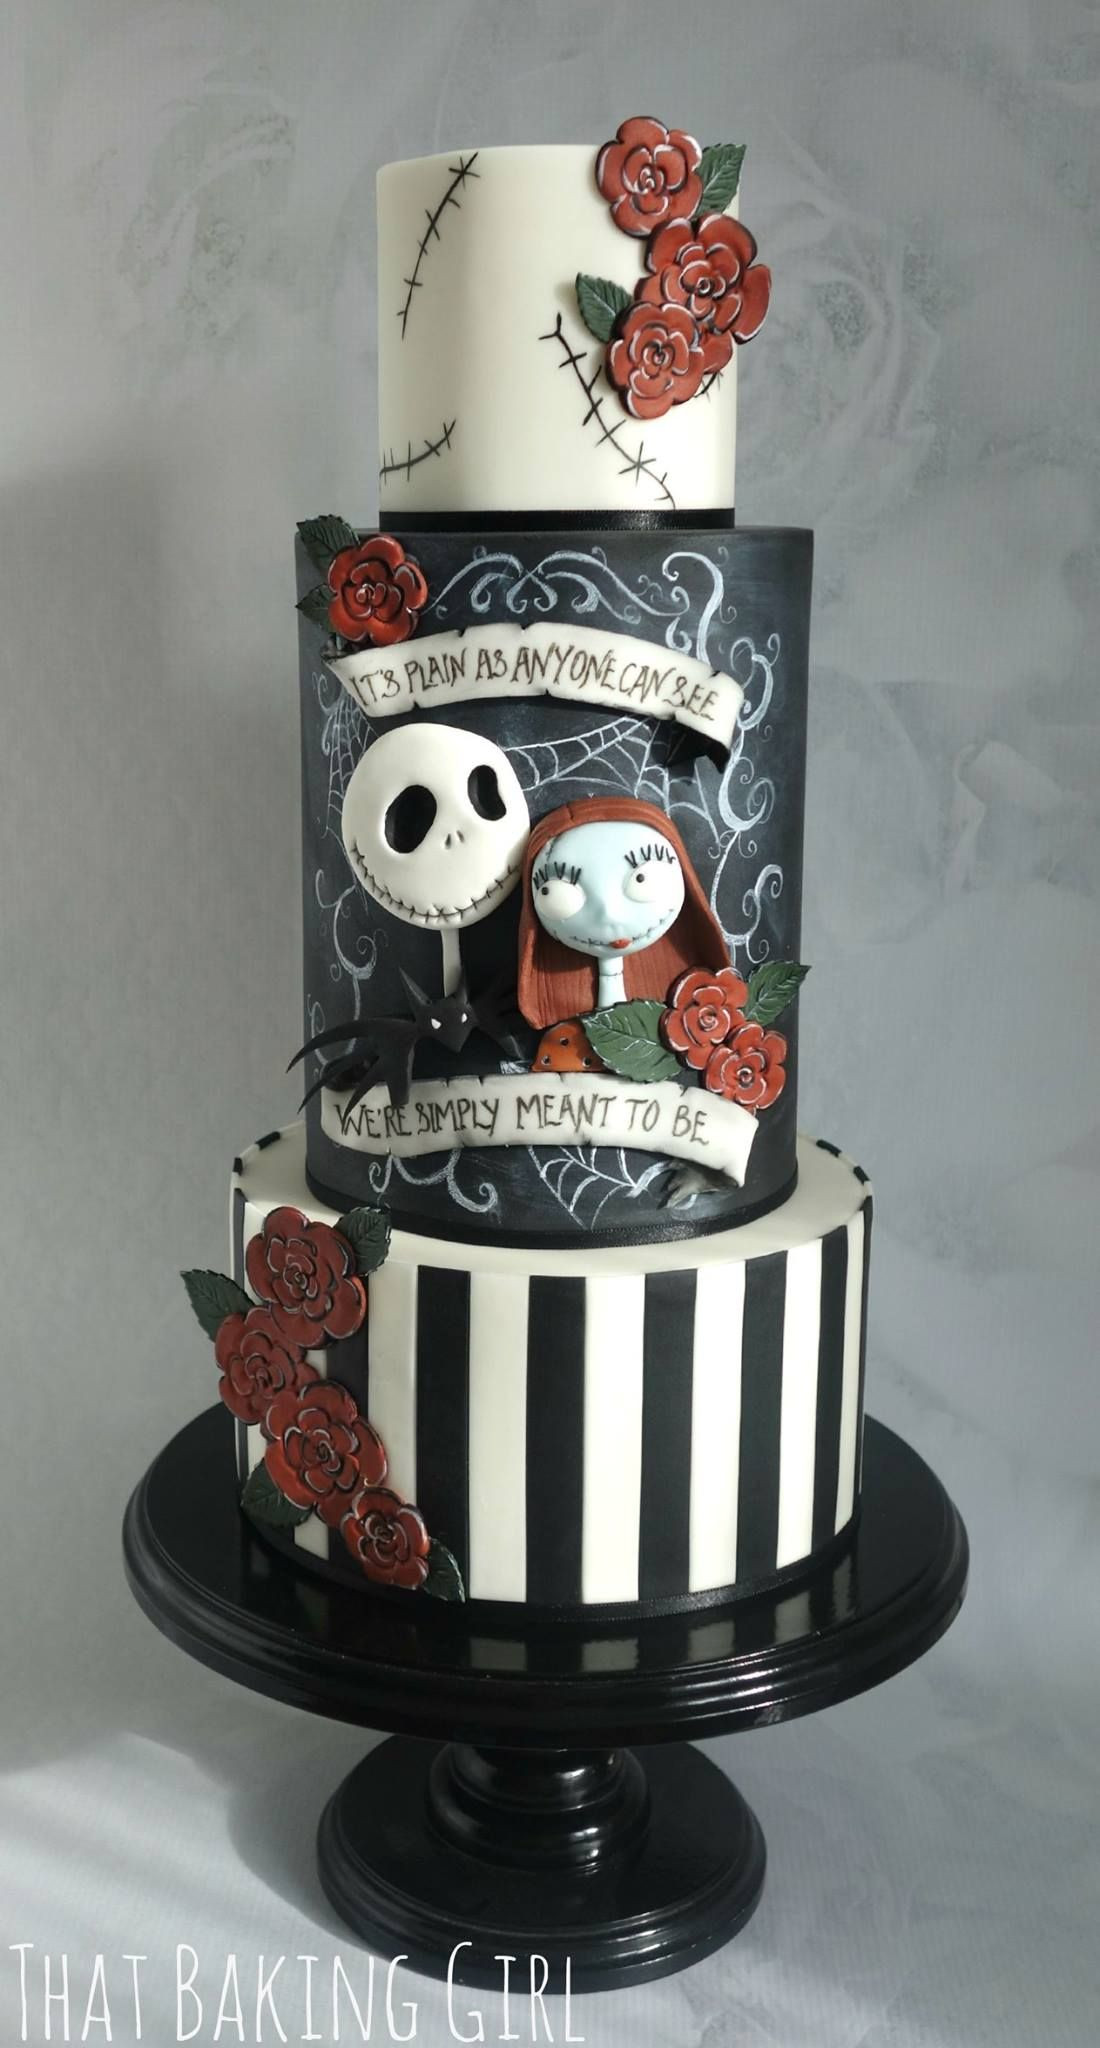 Nightmare Before Christmas Cakes Decorations  we re simply meant to be nightmare before christmas